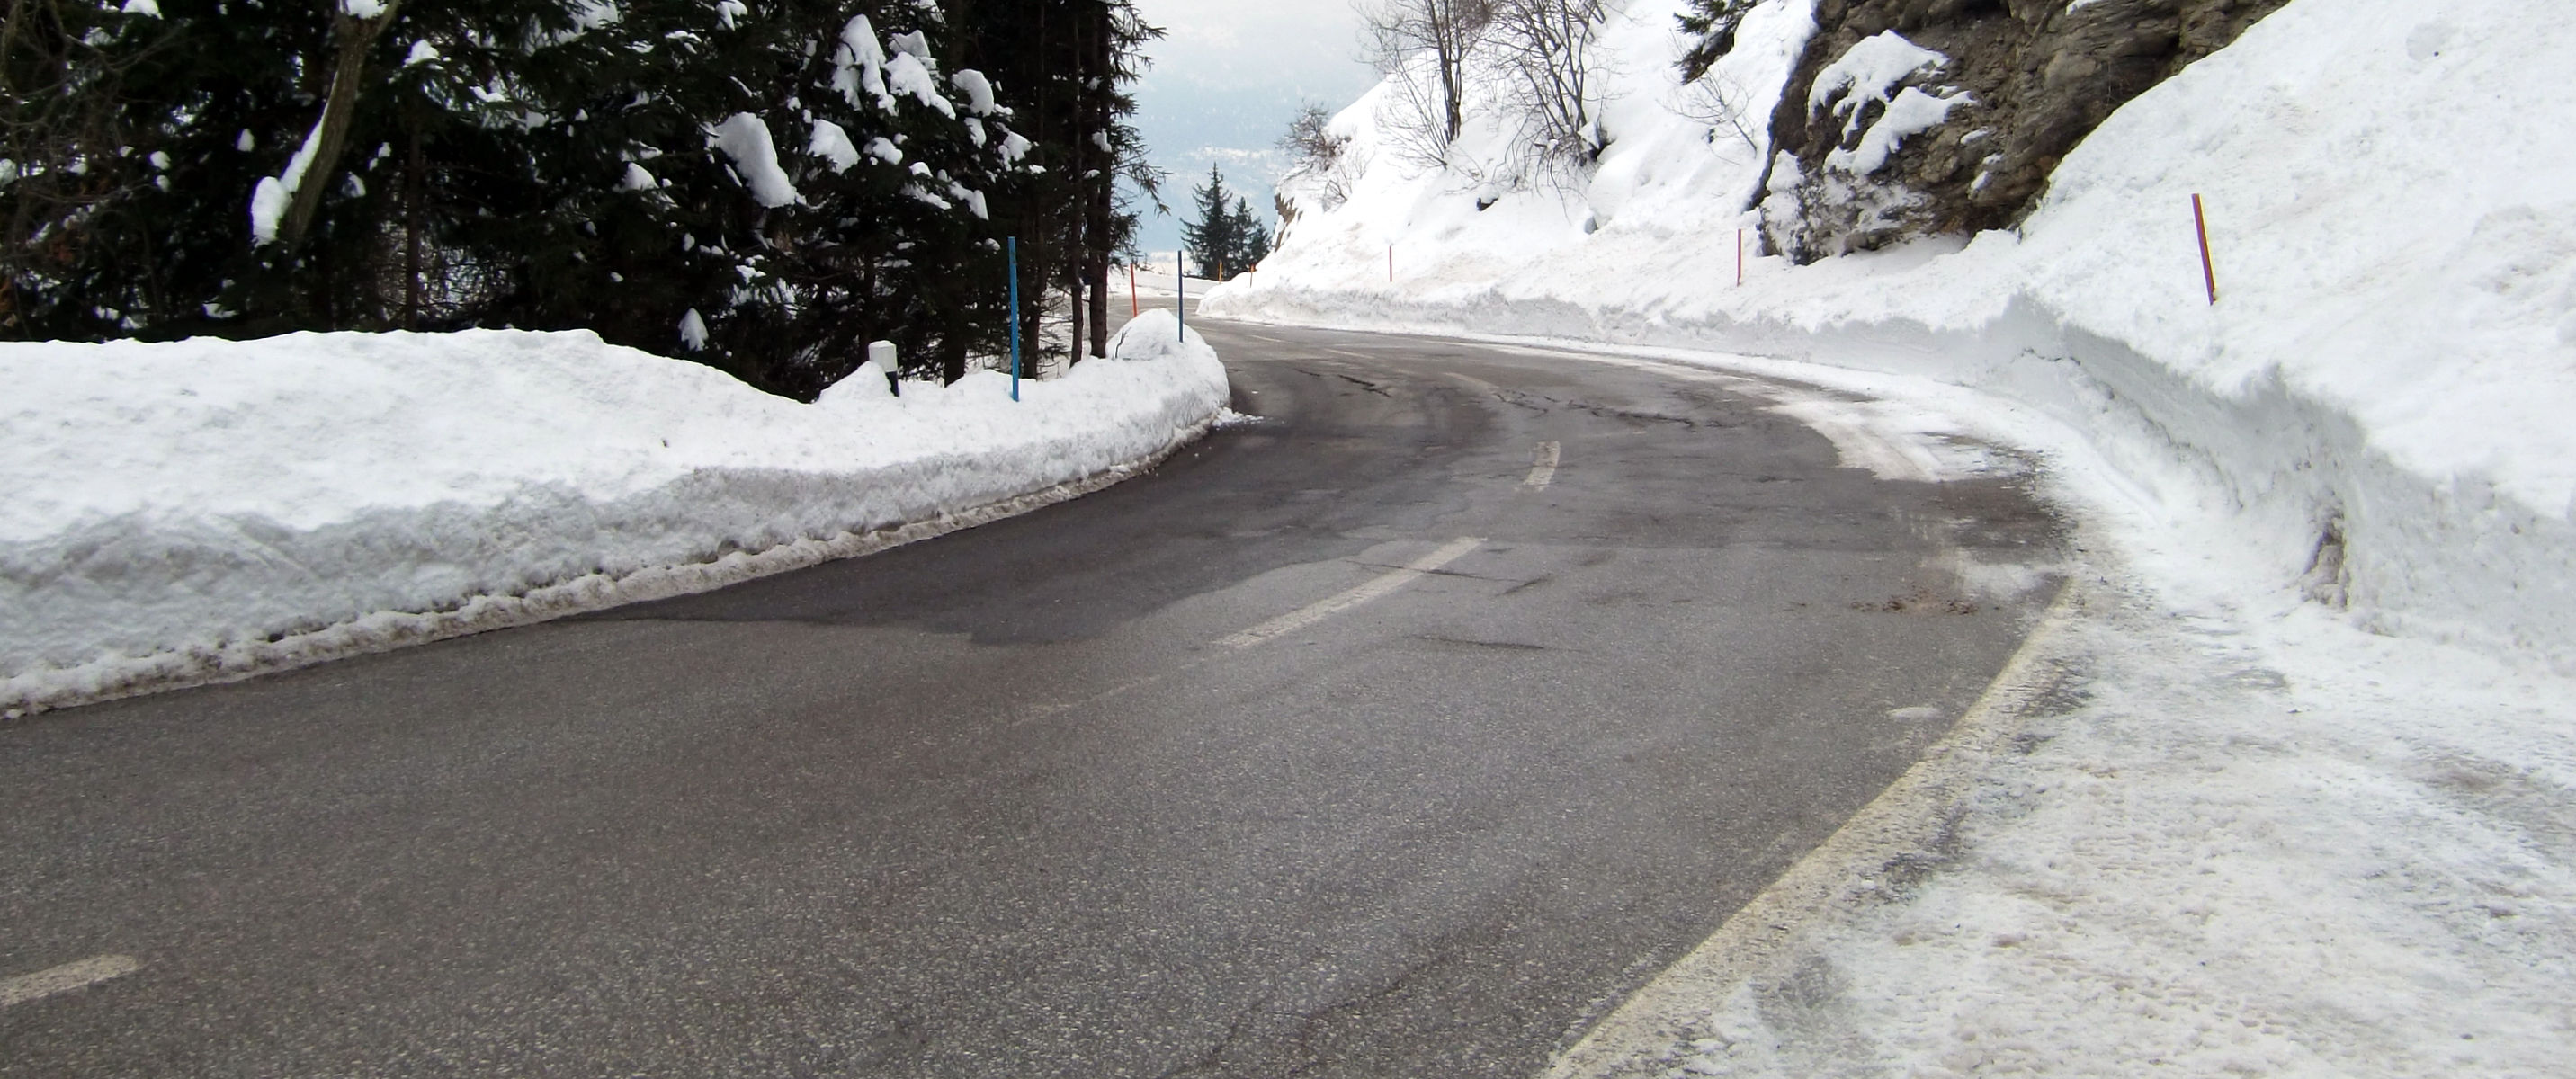 ICY ROAD IN WINTER SCENE © Chachas   Dreamstime.com